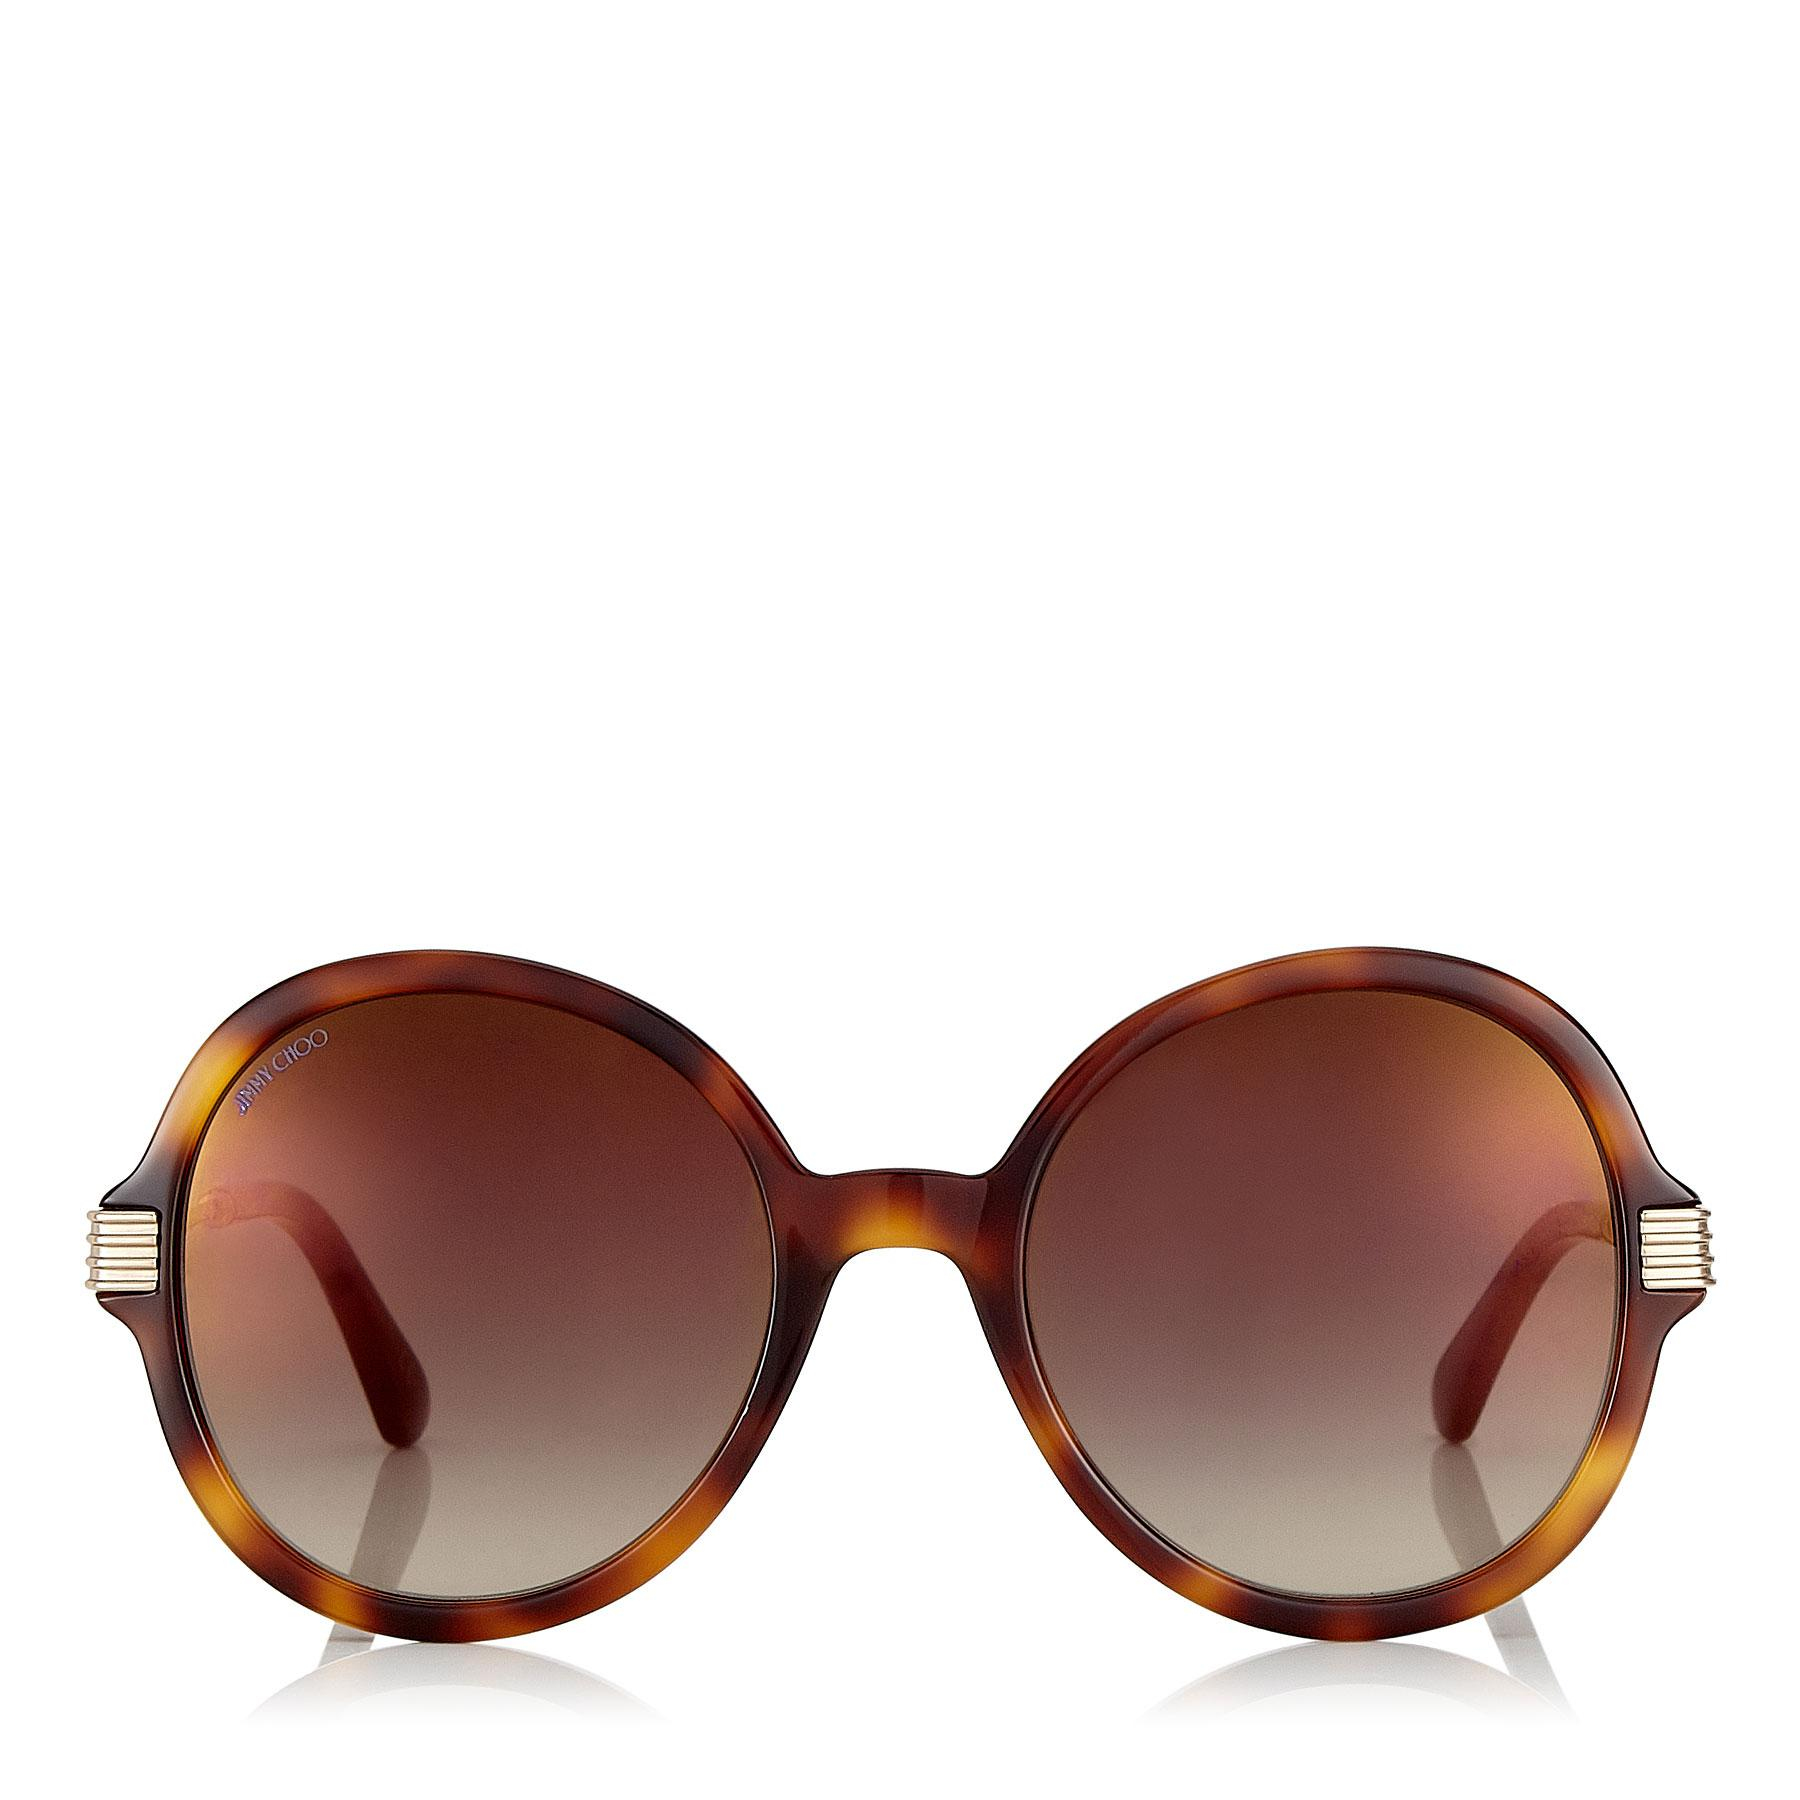 caf39d6d3c82 Lyst - Jimmy Choo Adria Dark Havana And Light Gold Round Framed ...